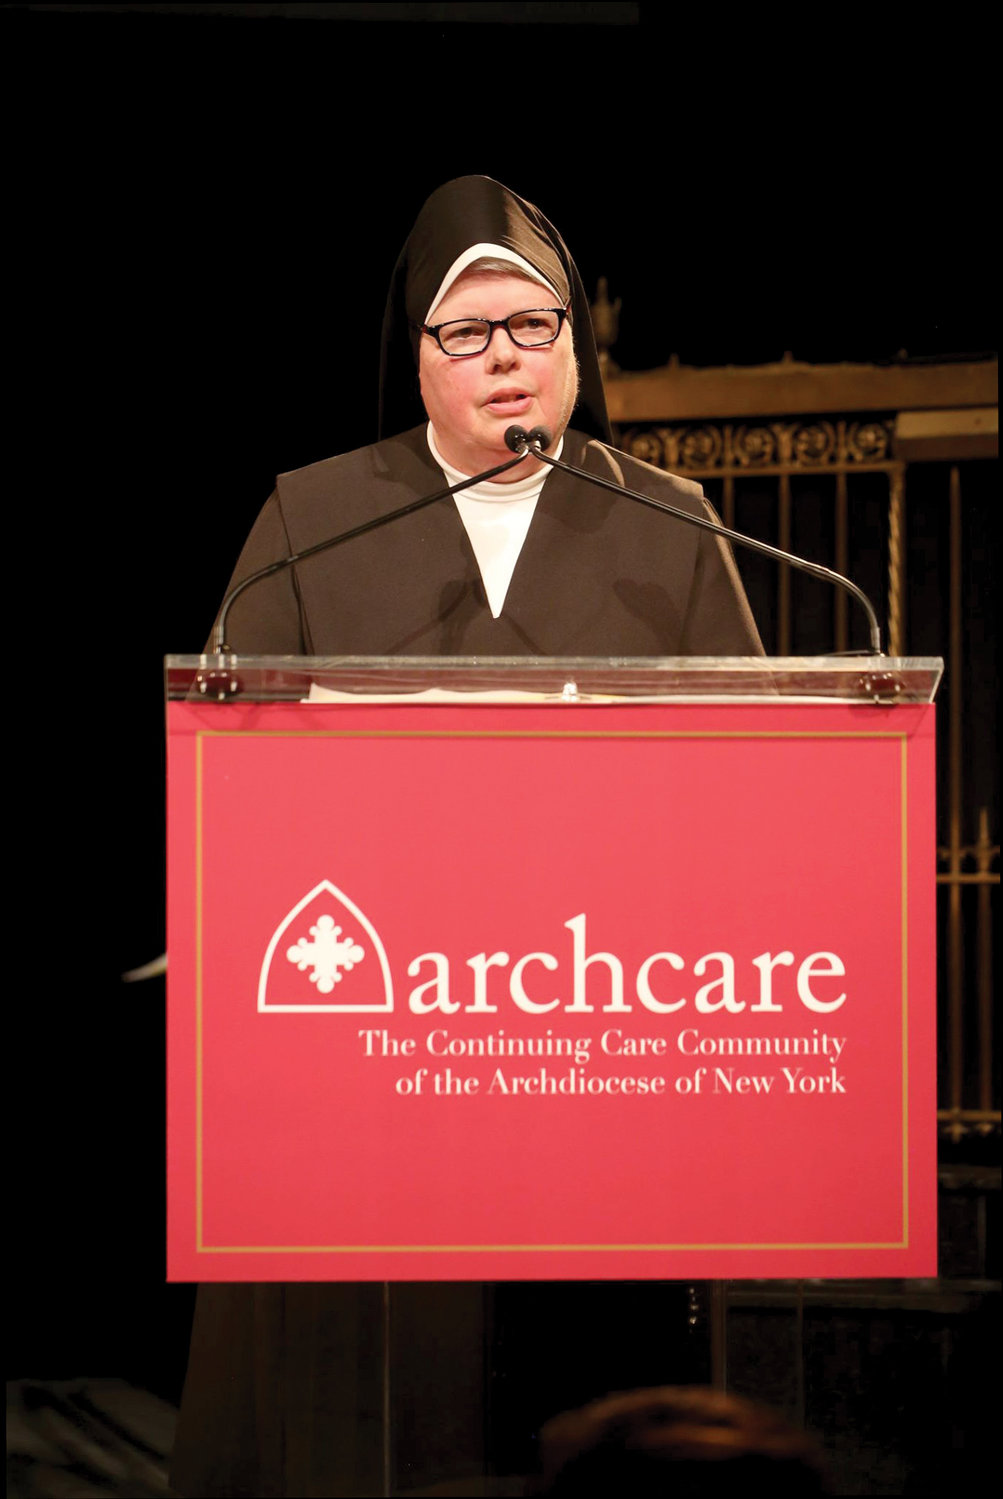 Mother M. Mark Louis Randall, O. Carm., prioress general of the Carmelite Sisters for the Aged and Infirm, delivers the invocation. Sister Sean William O'Brien, O. Carm., who served as executive director of ArchCare at Mary Manning Walsh Home in Manhattan until her death July 22, received a Memorial Tribute.